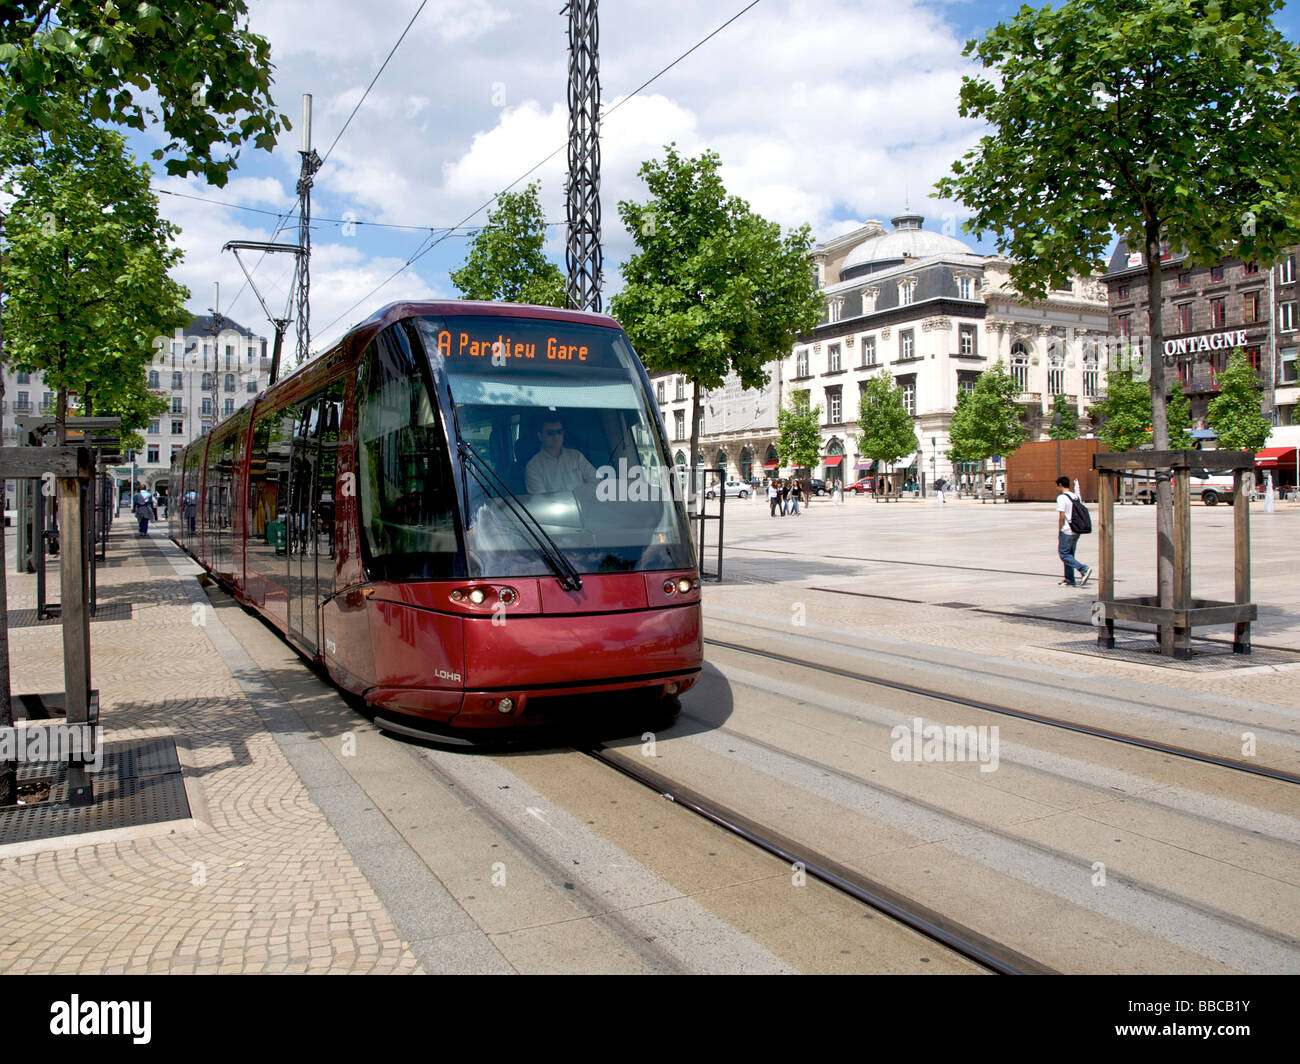 Tram In The City Of Clermont Ferrand, Auvergne, France Stock Photo ...